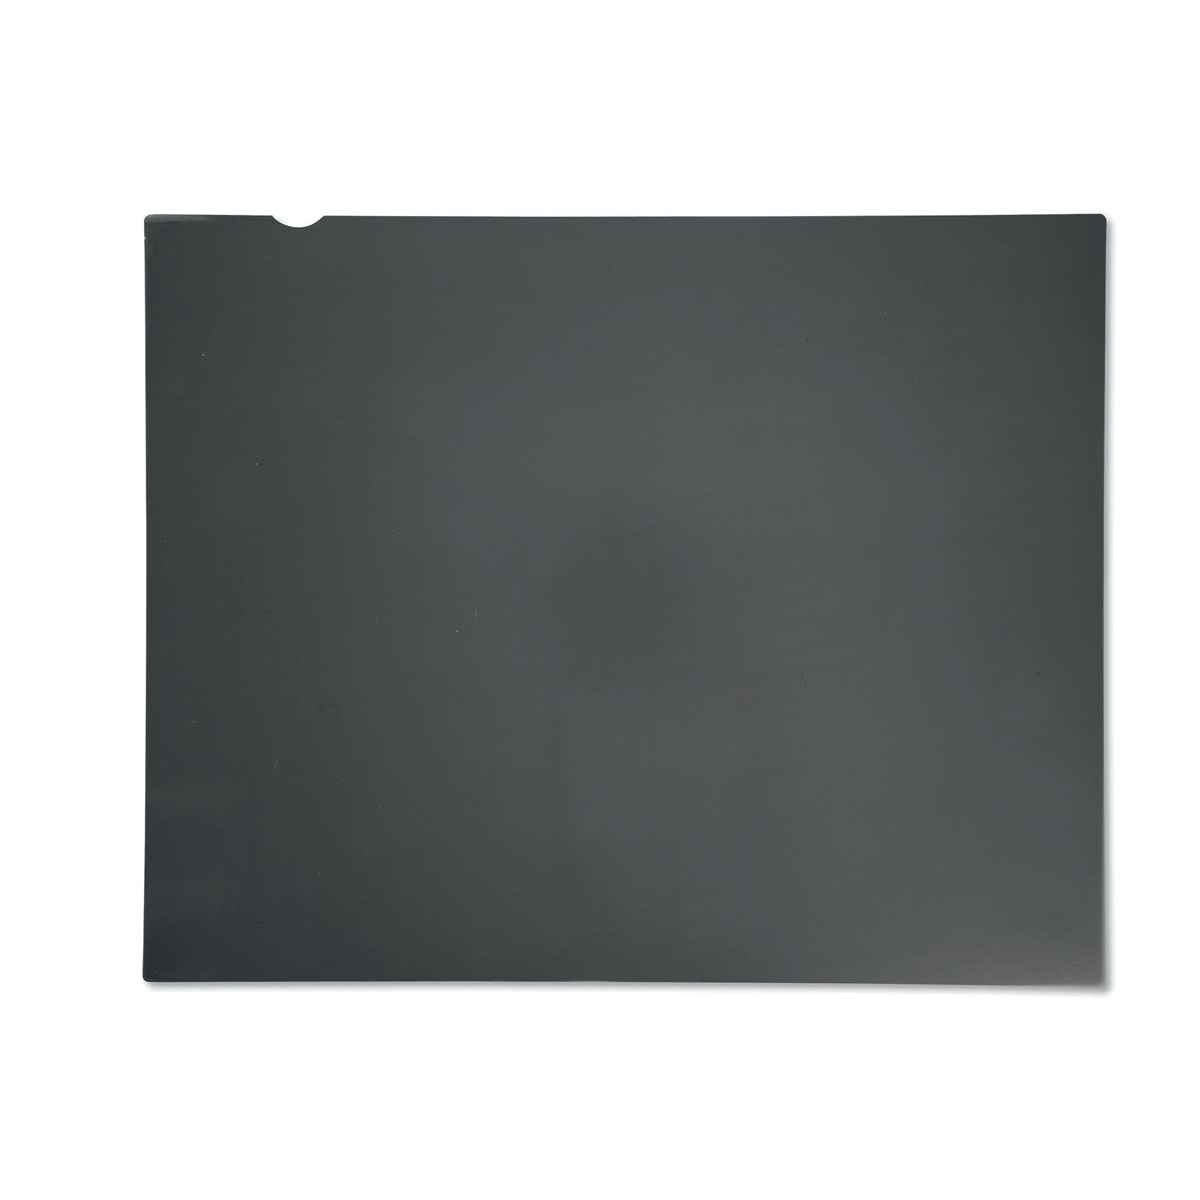 Laptop 5 Star Office 19inch Privacy Filter for TFT monitors and Laptops Transparent/Black 4:3